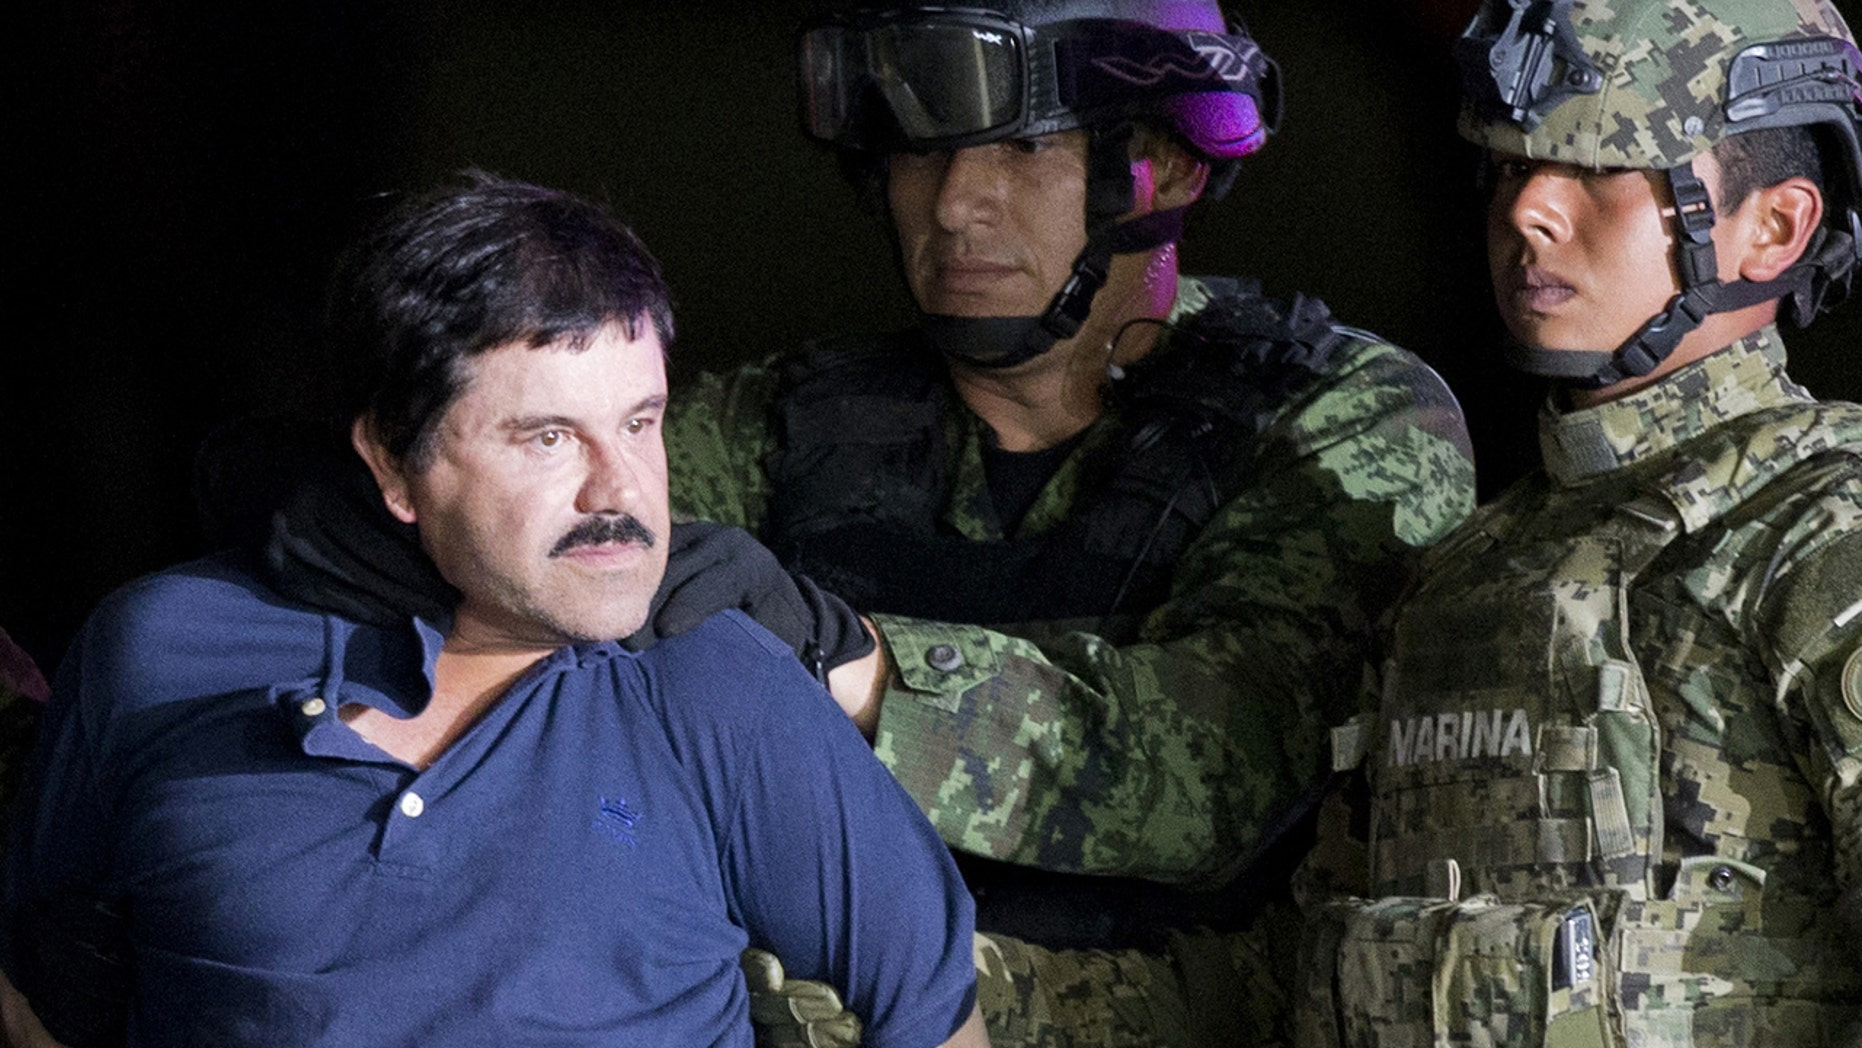 Guzman, 60, was transferred to the United States in January 2017 and pleaded not guilty to charges that he oversaw the Sinaloa drug cartel.